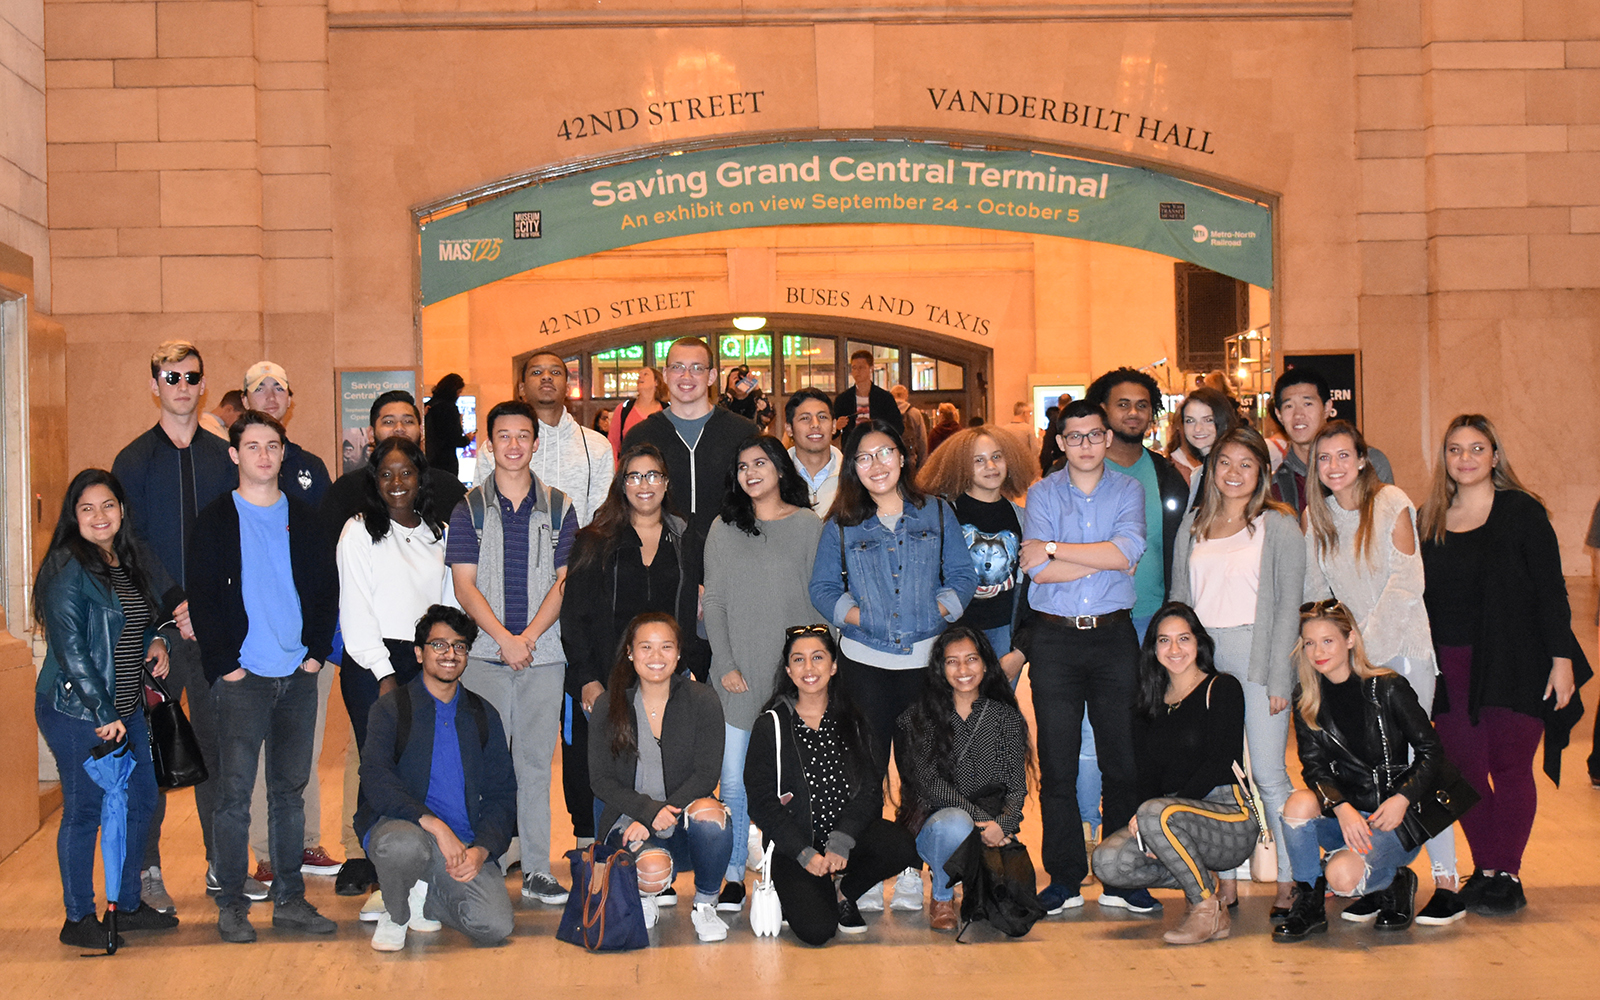 BCLC Students from UConn Stamford arriving in Grand Central Station in NYC, on their way to visit the set of Shark Tank (Courtesy BCLC)